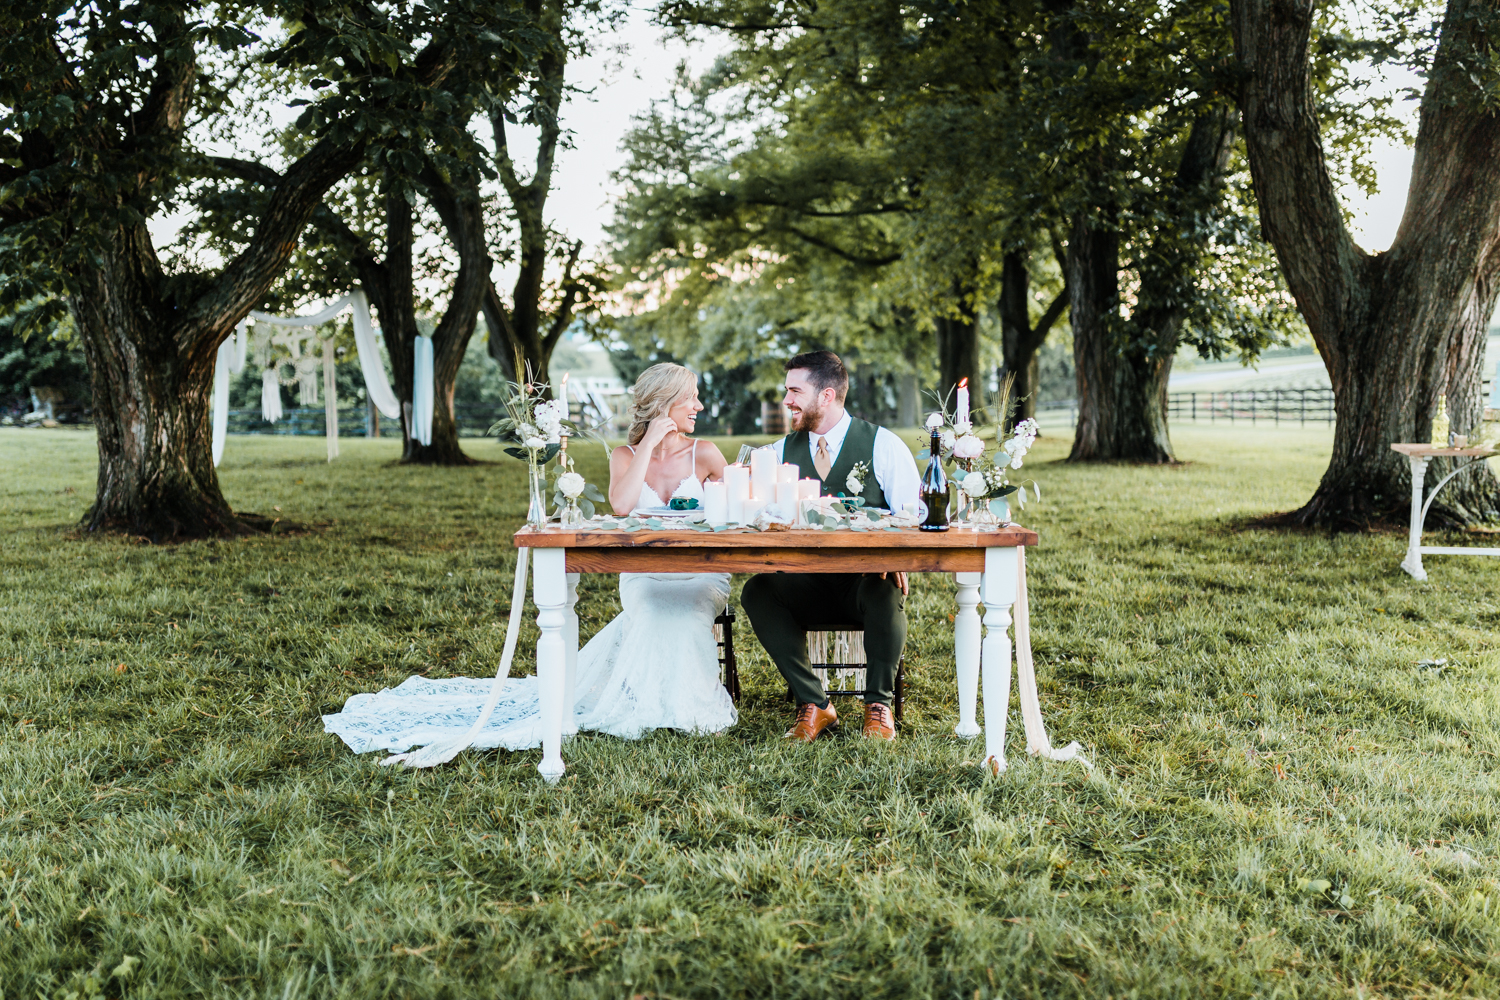 green emerald and gold weddings - styled shoot - geode wedding ideas - cheesecloth table runner